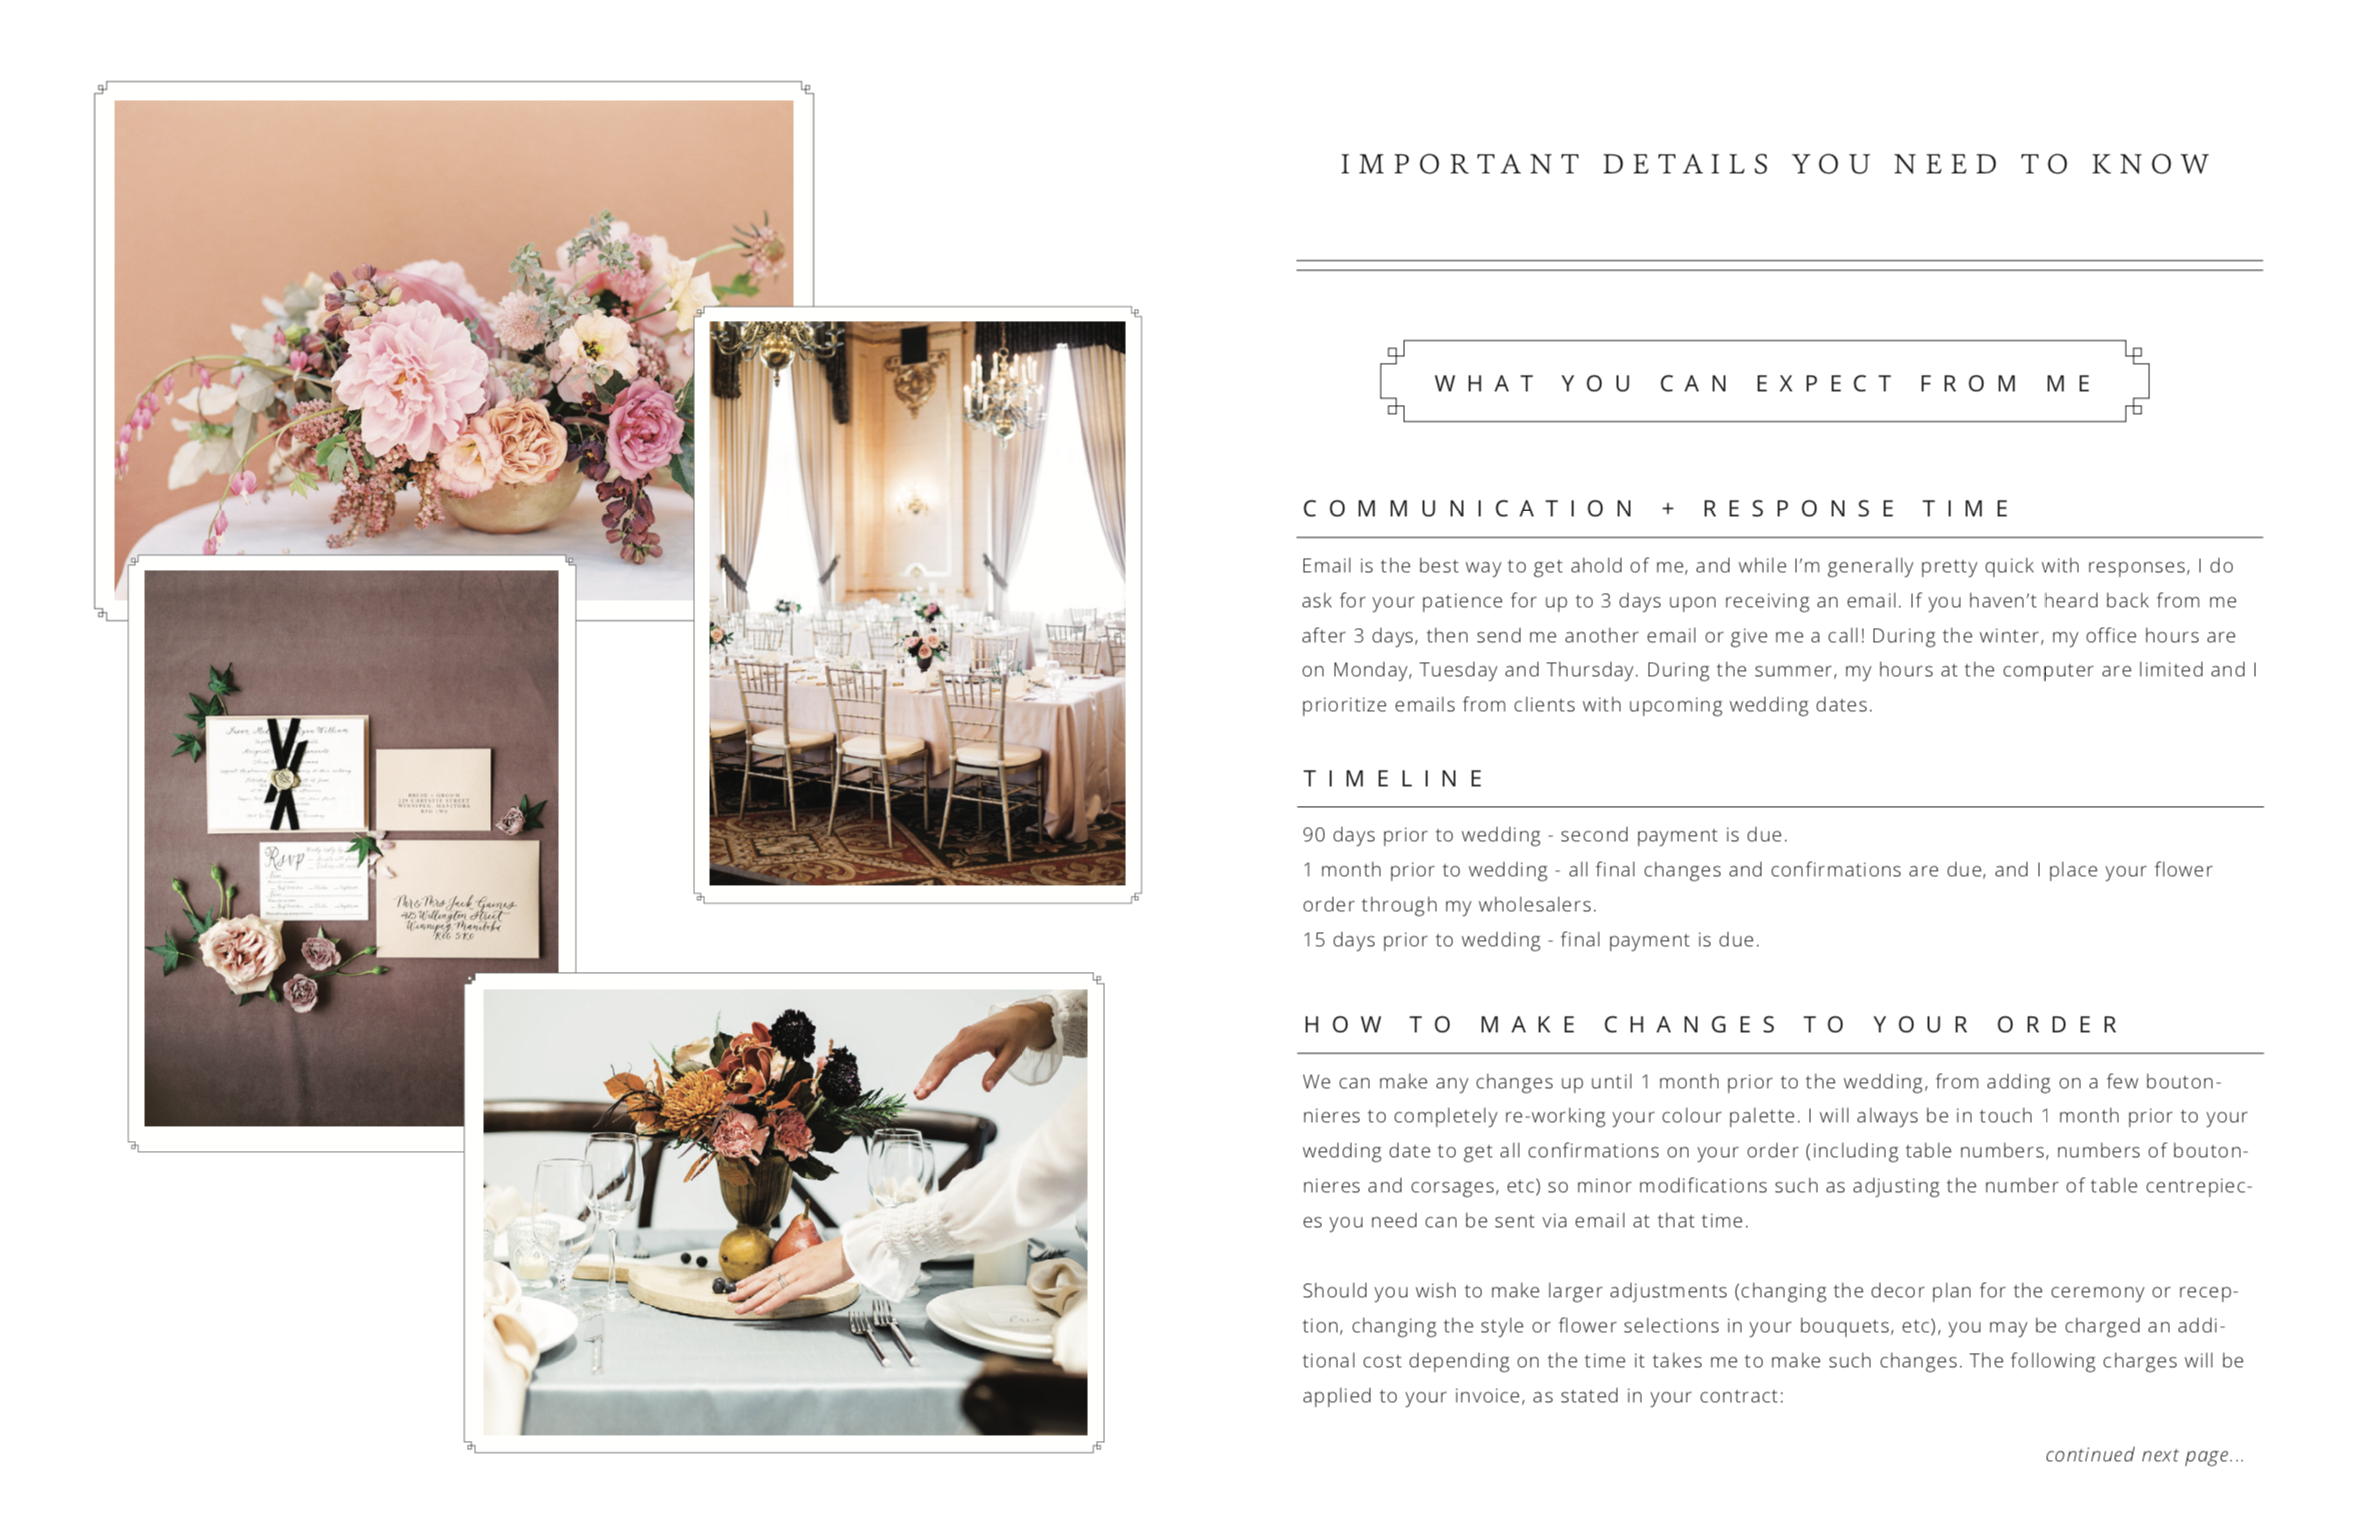 How to Build a Better Wedding Business - Educate Your Wedding Clients